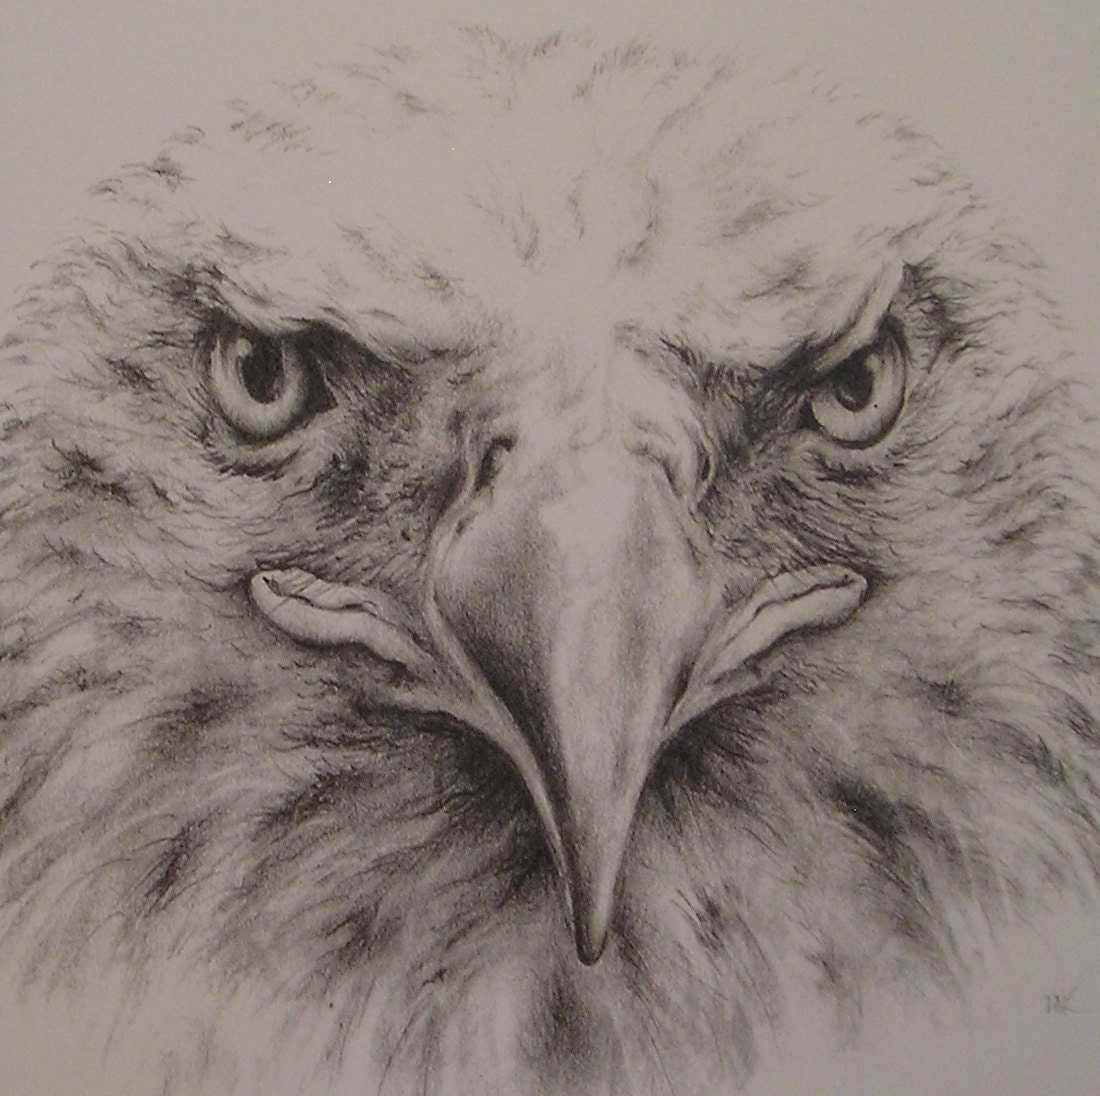 Drawing: Bald Eagle Pencil Drawing With Mat